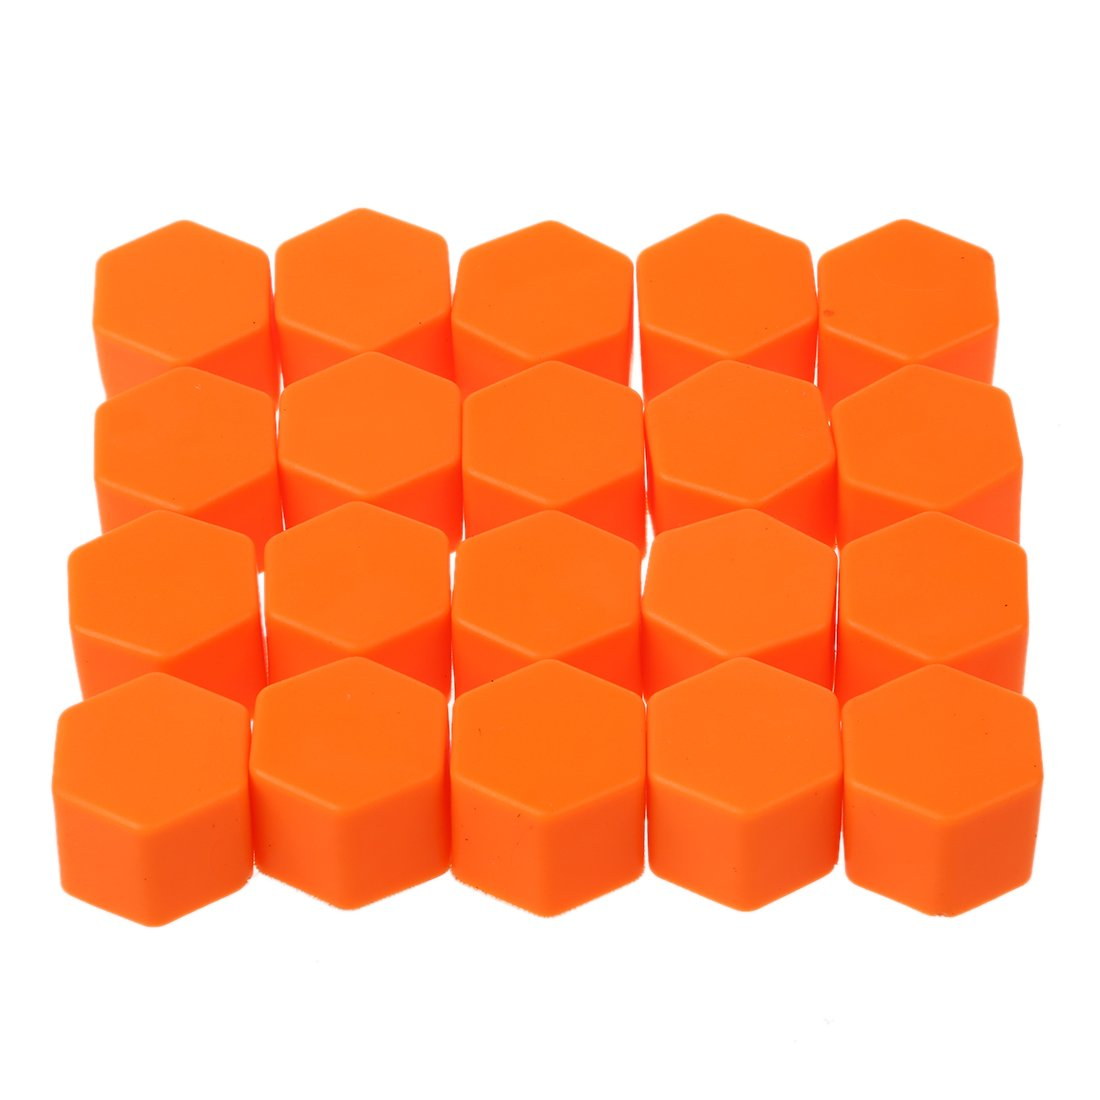 TOOGOO(R) New Arrival 20 Units 19mm Silicone Car Wheel Rims External Screws Nut Screws Car Covers Caps Orange 103548A6